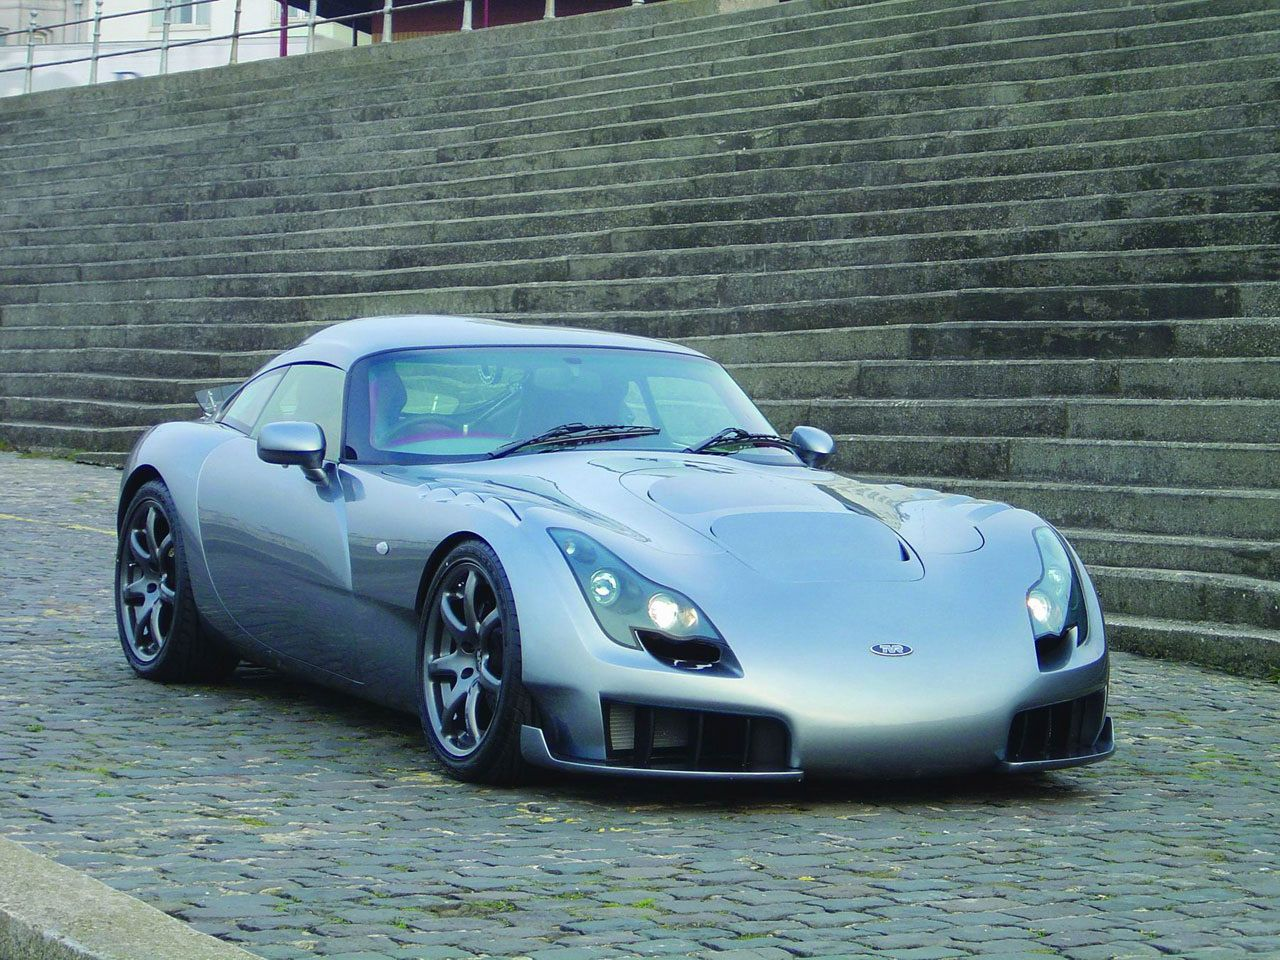 Exceptionnel 259 Best TVR Sagaris And T350 Images On Pinterest | Cool Cars, Cars And  Dream Cars